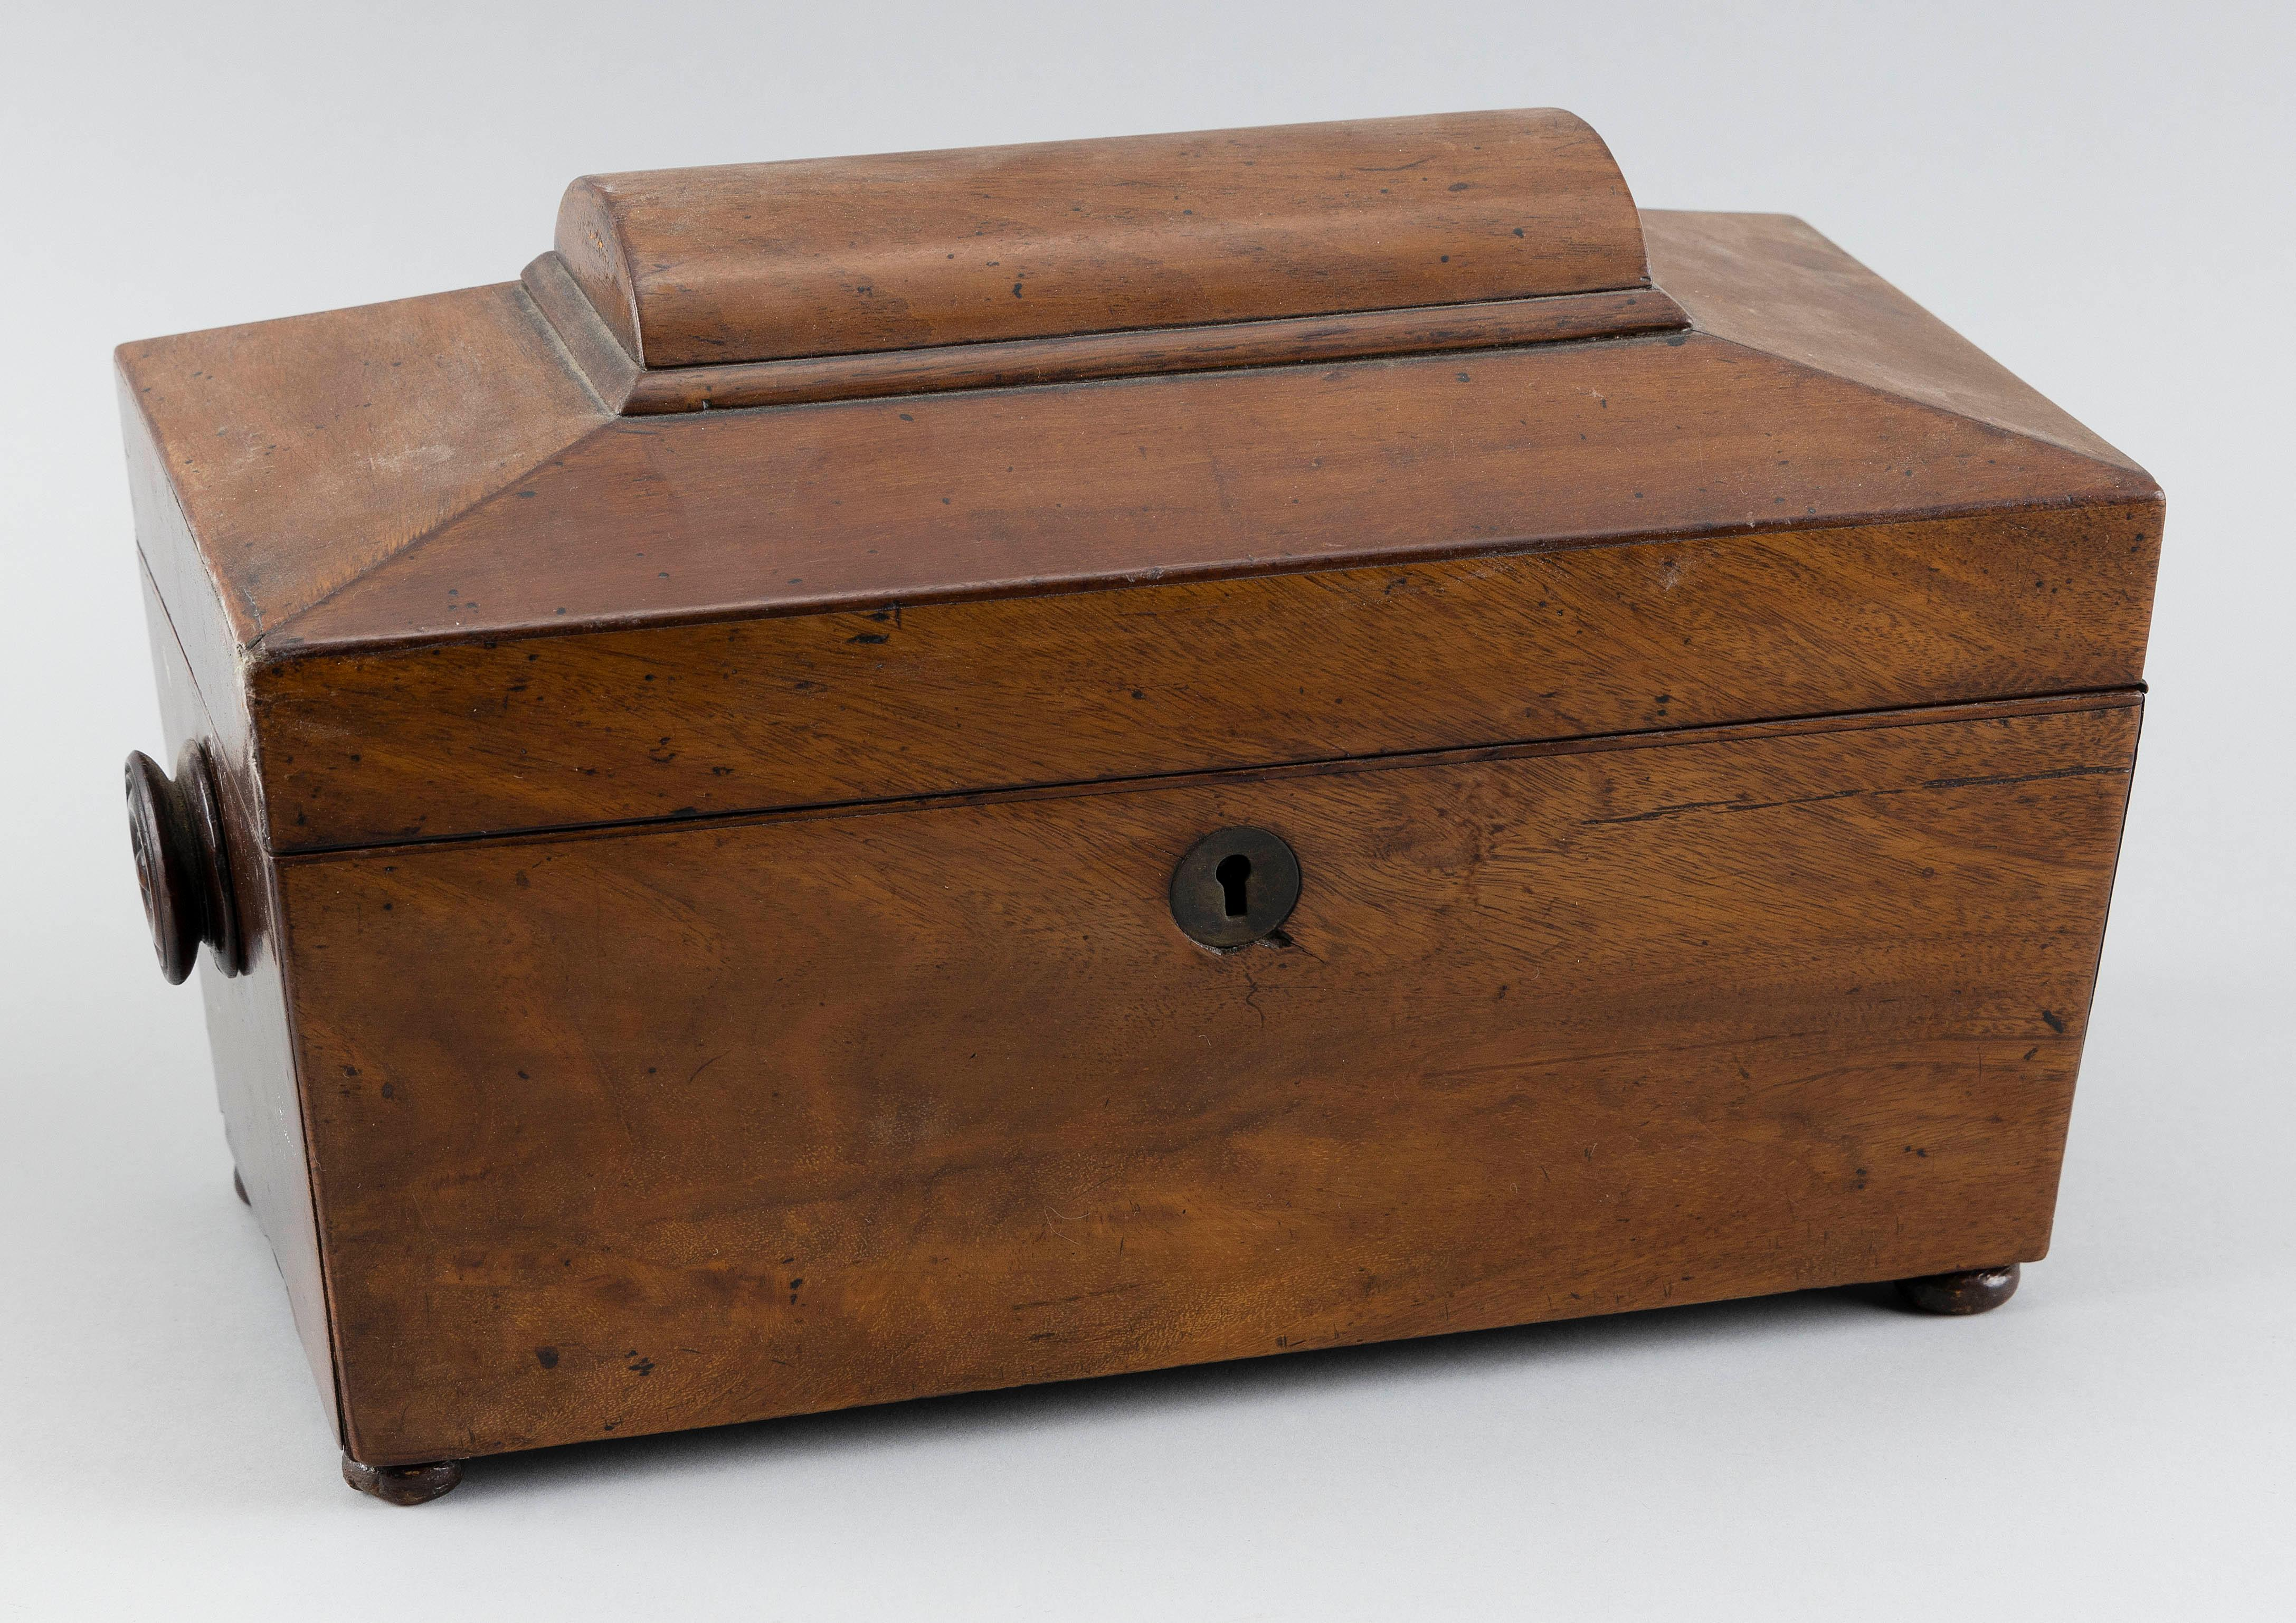 ENGLISH TEA CADDY In walnut veneer. Interior with later glass waste bowl and hinged lidded compartments. Turned wooden handles at si...